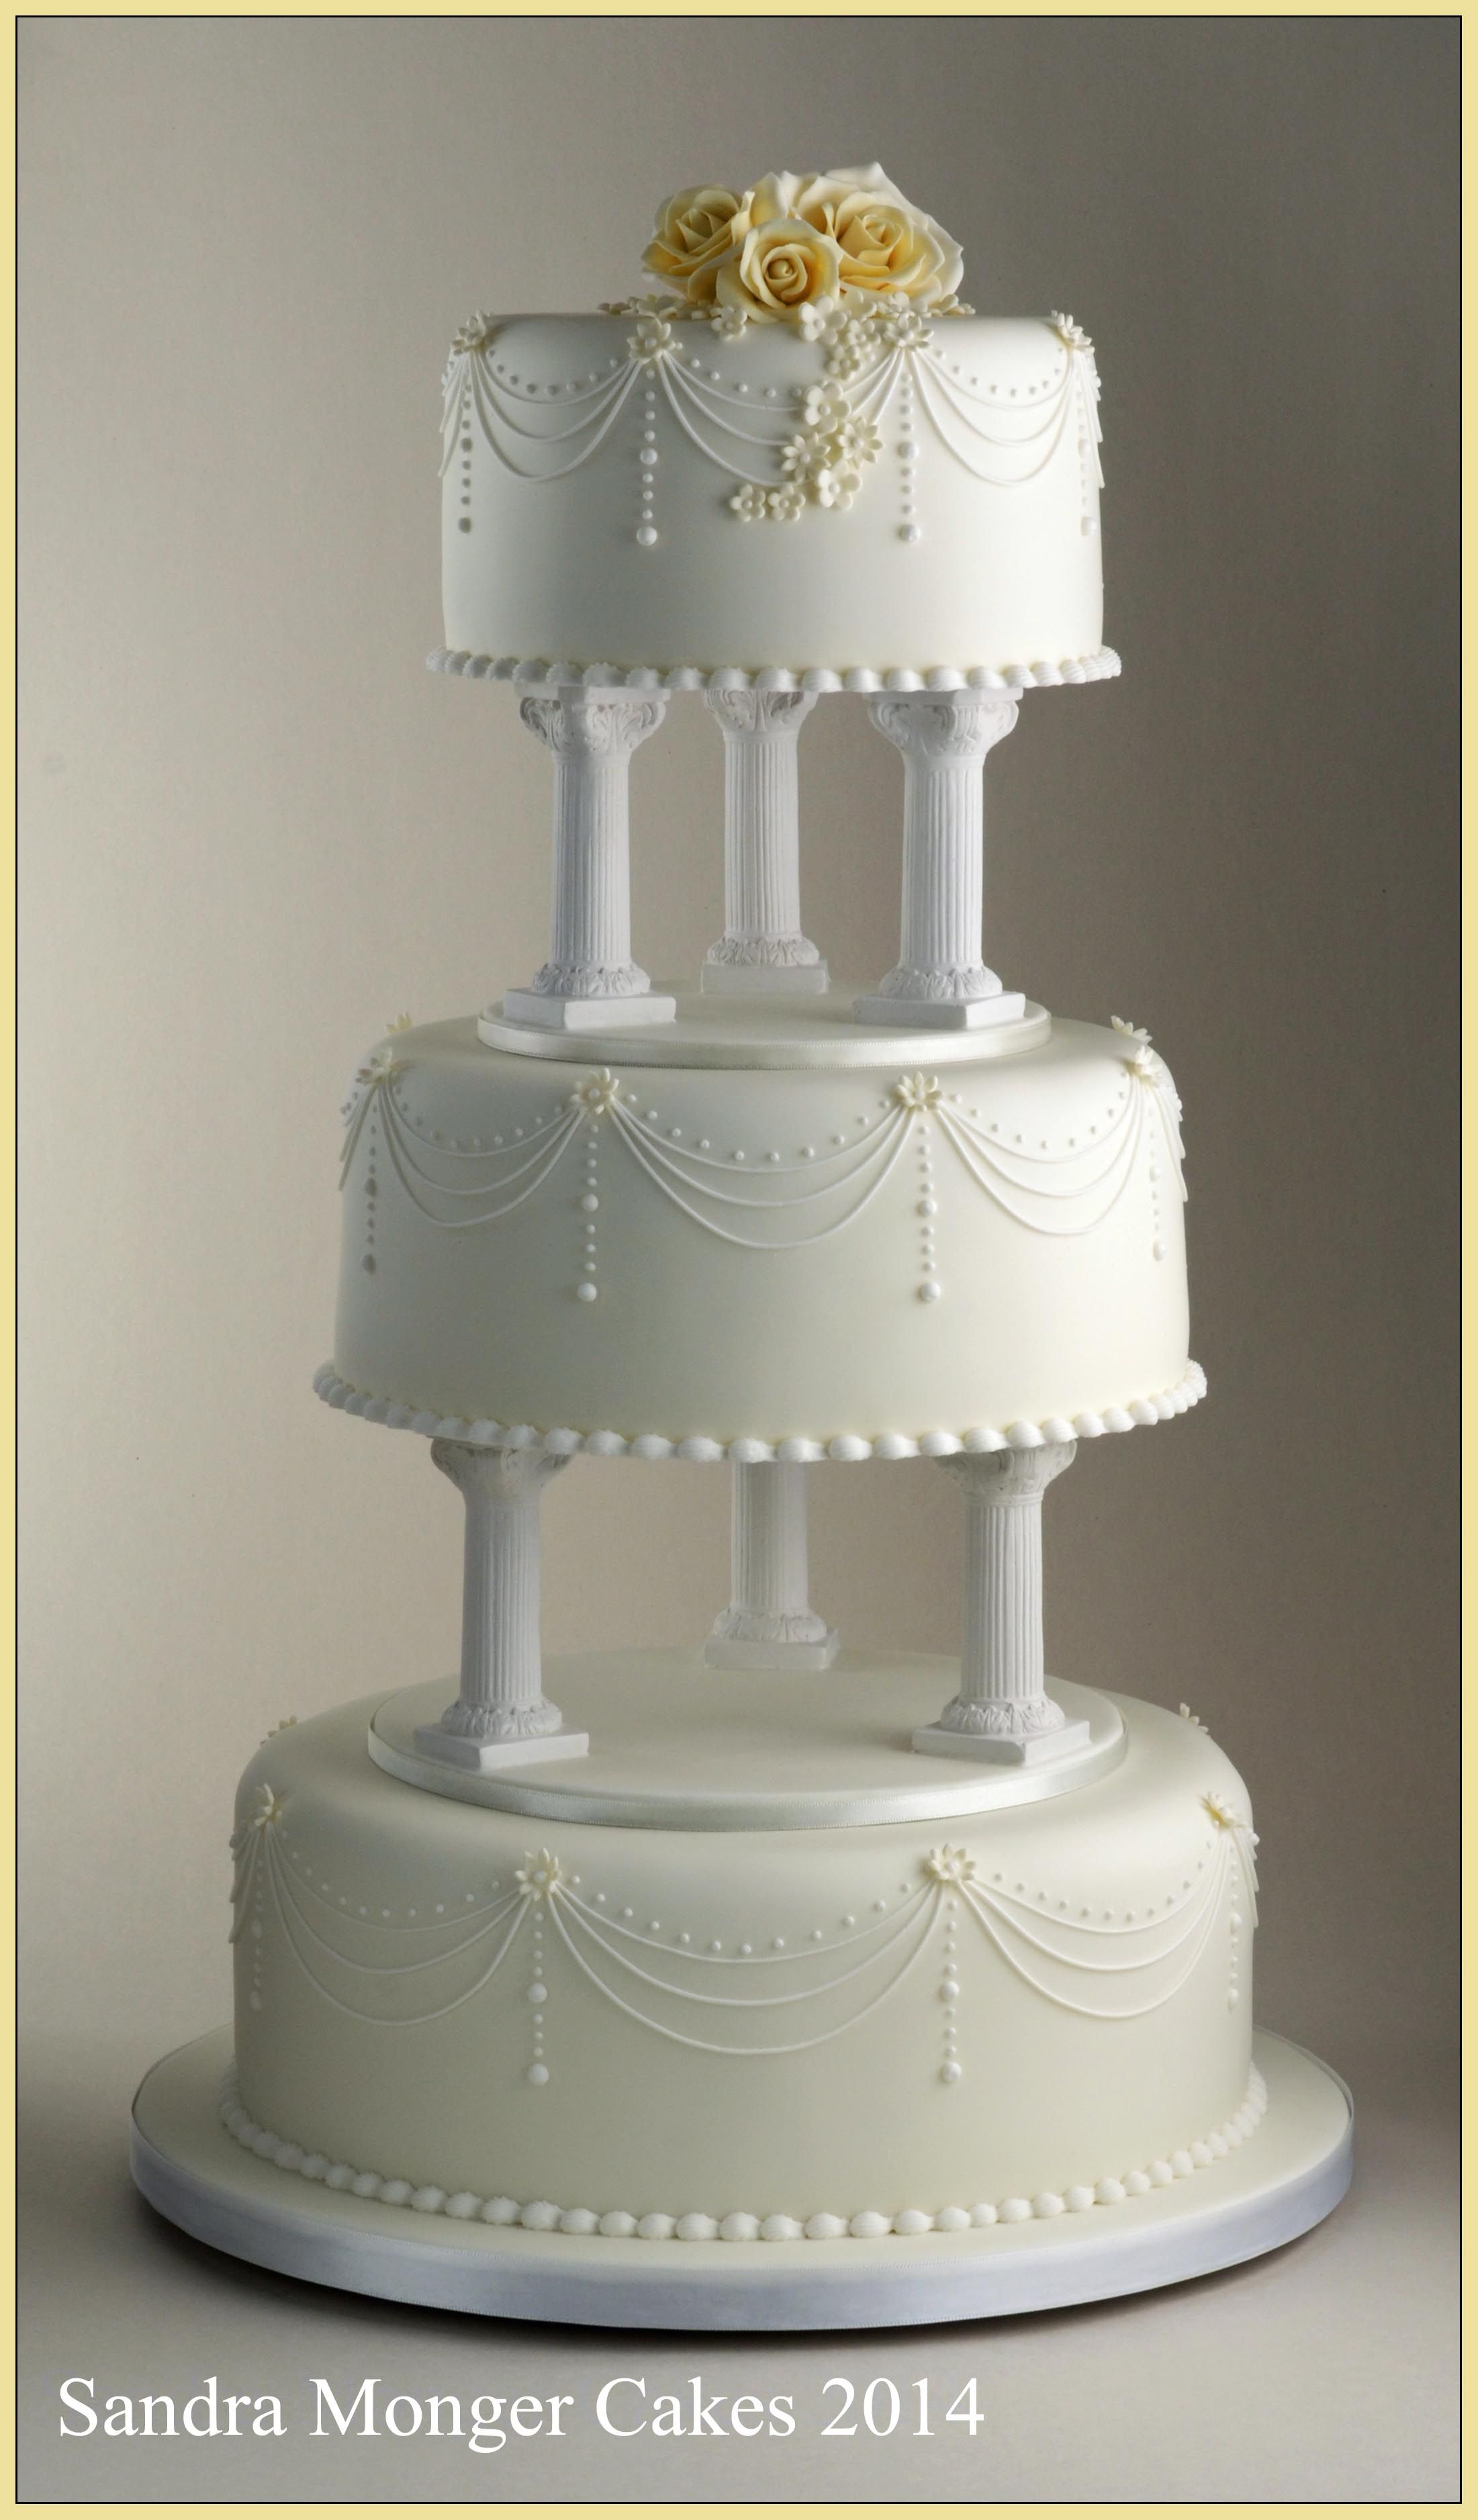 4 tier wedding cake with pillars classic pillar wedding cake with piped swags and flowers 10423